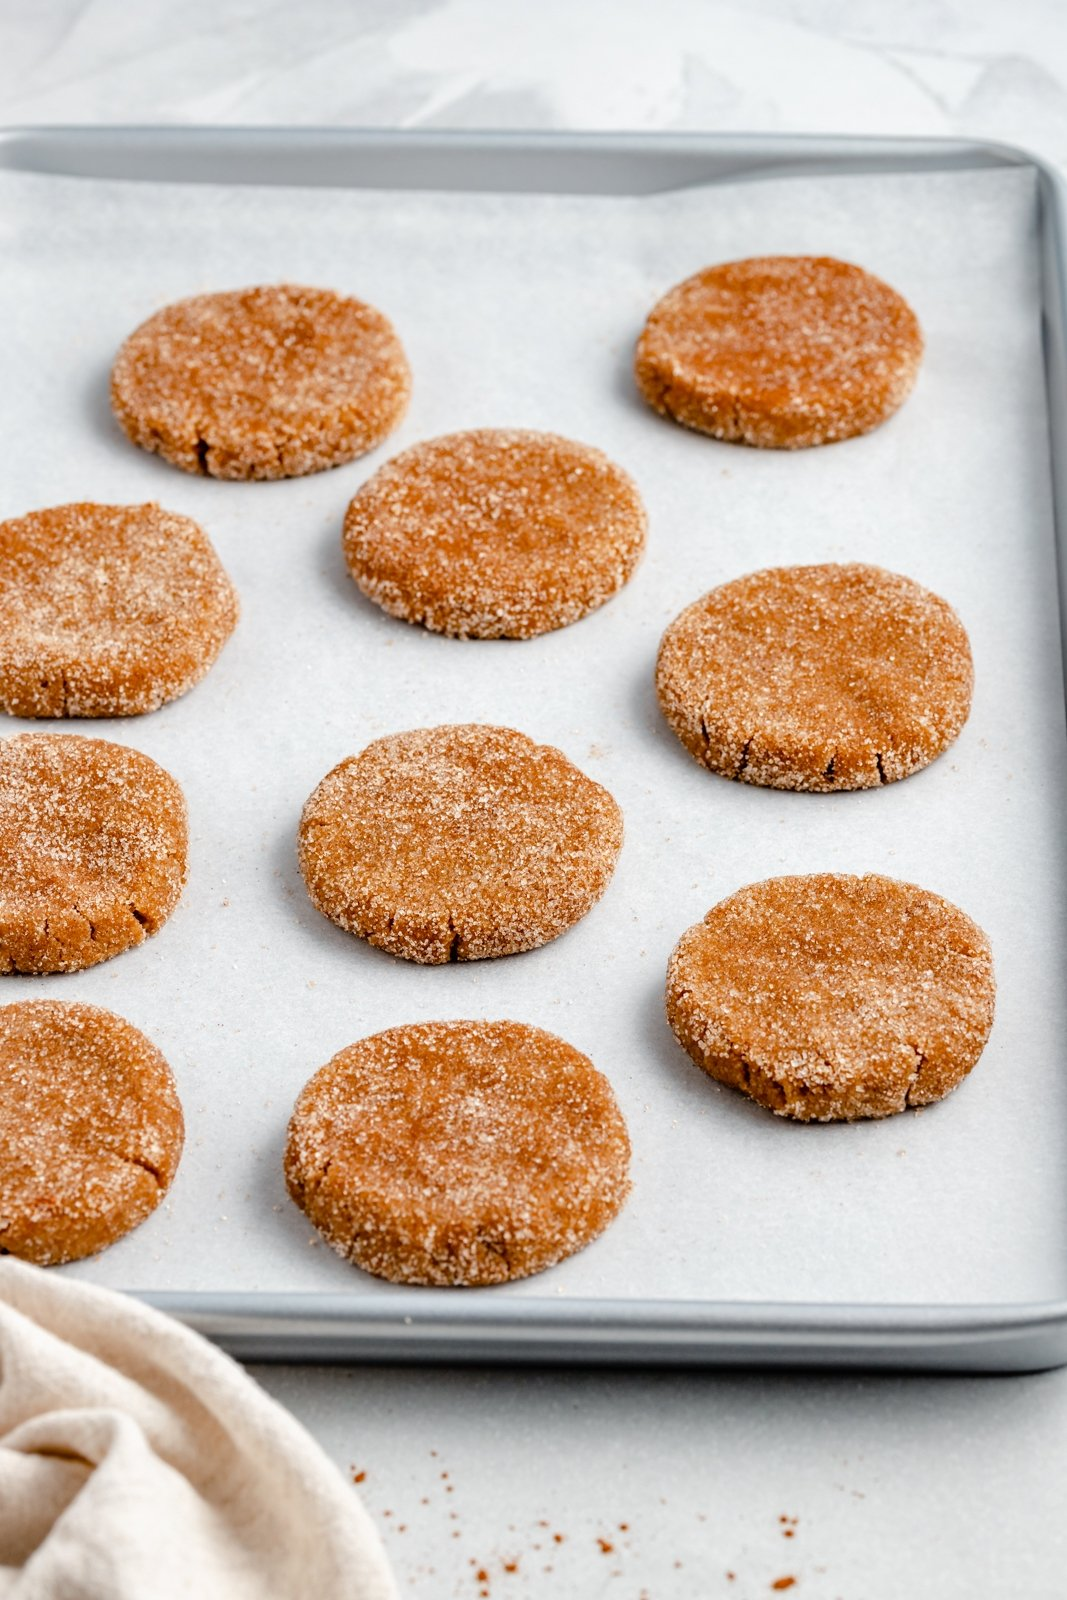 unbaked grain free snickerdoodles on a baking sheet